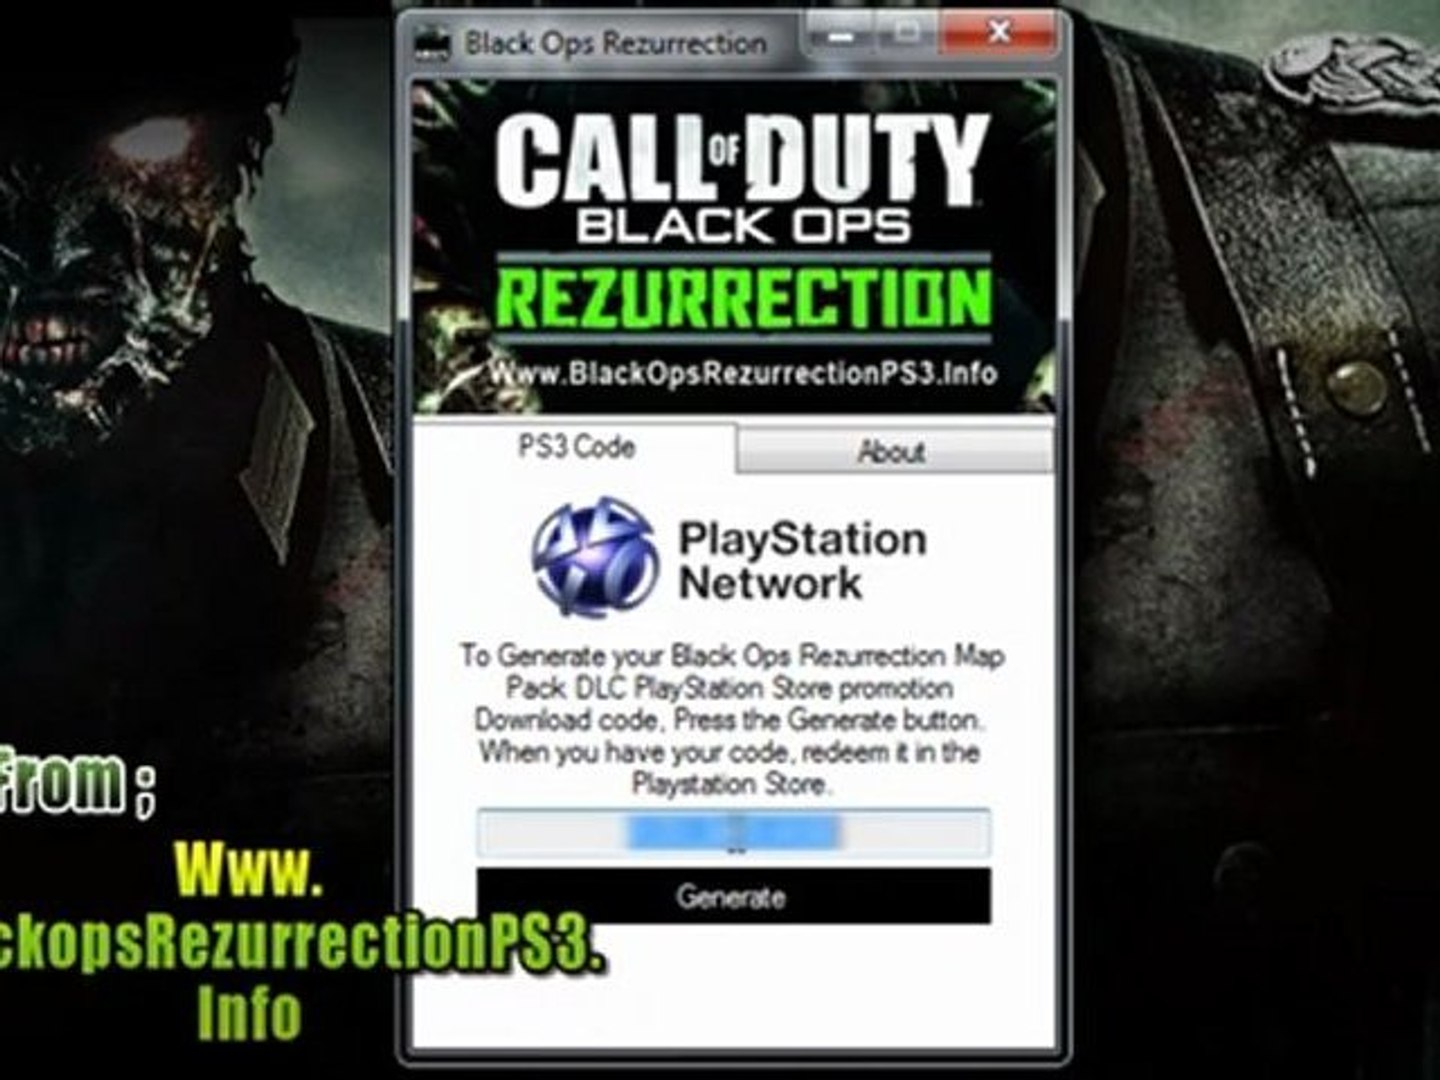 Zombie Map Packs For Black Ops on black ops zombies 5 map, black ops 2nd map pack, future black ops map pack, black ops nazi zombies maps, black ops rezurrection map pack, nuketown zombies map pack, black ops zombies maps list, black ops zombie map names, black ops escalation map pack, black ops revolution map pack, black ops infected map pack, call of duty black ops 2 zombies new zombie pack,